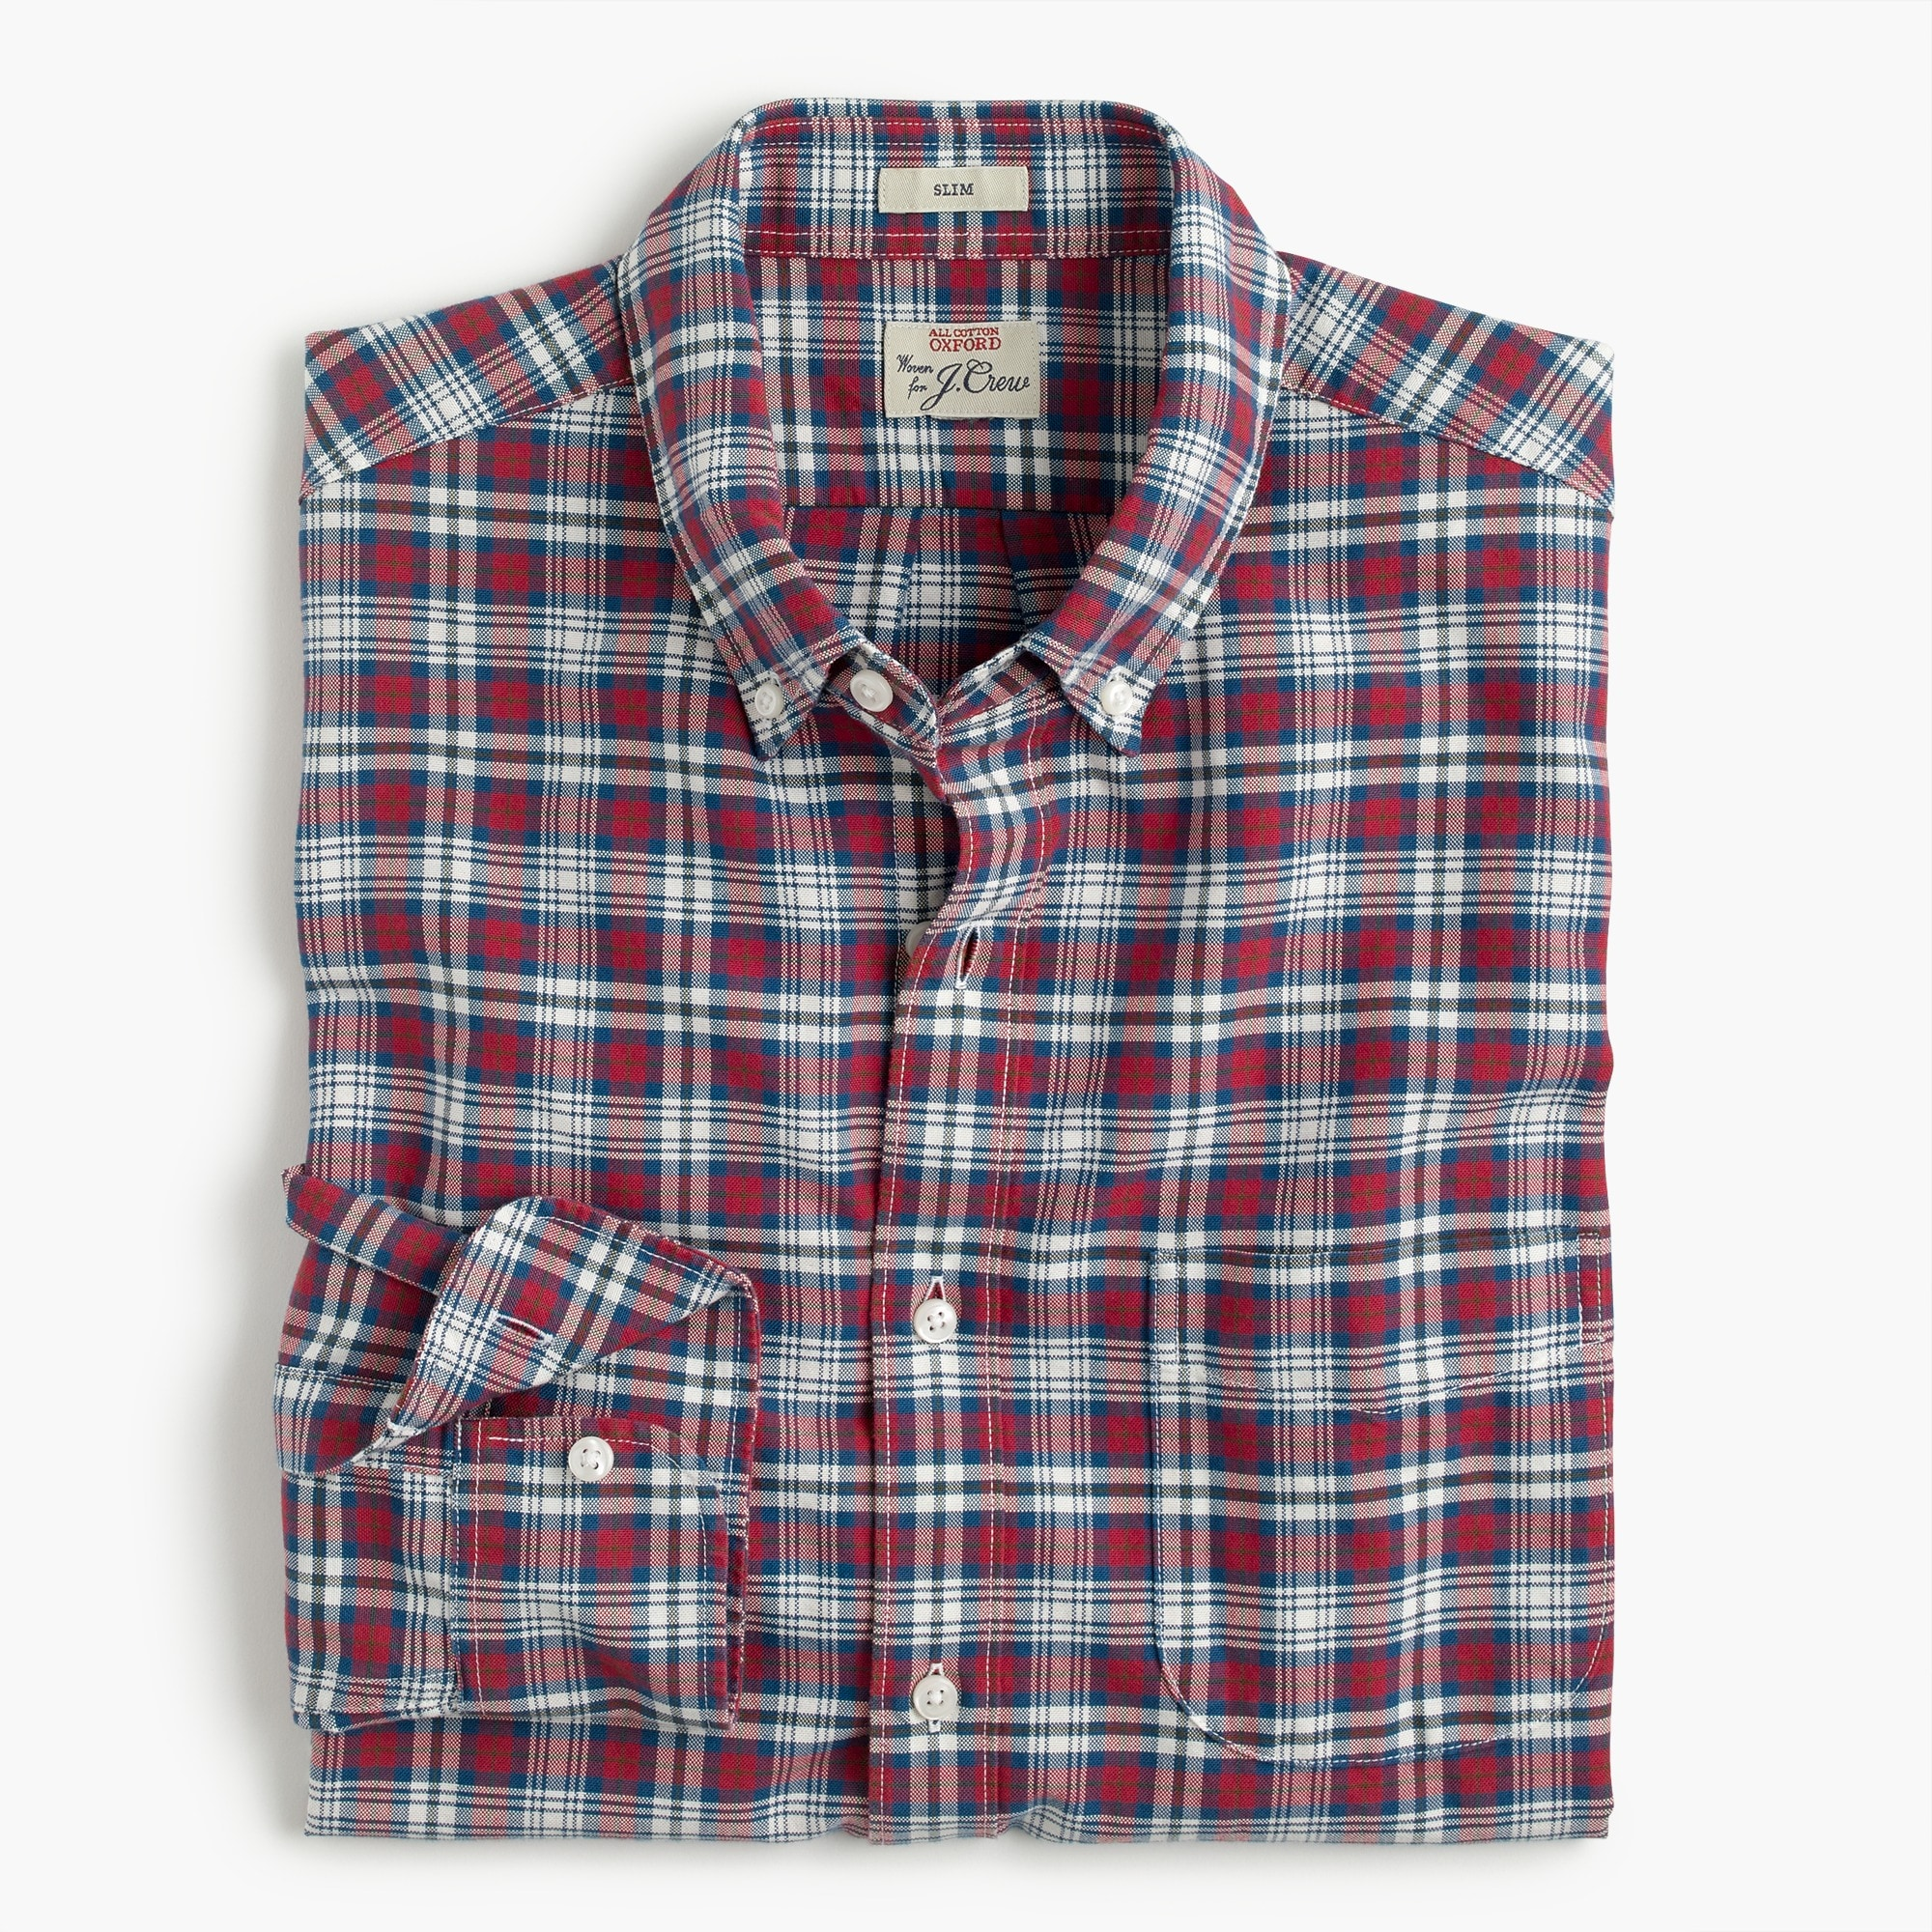 Image 1 for Slim American Pima cotton oxford shirt in tartan